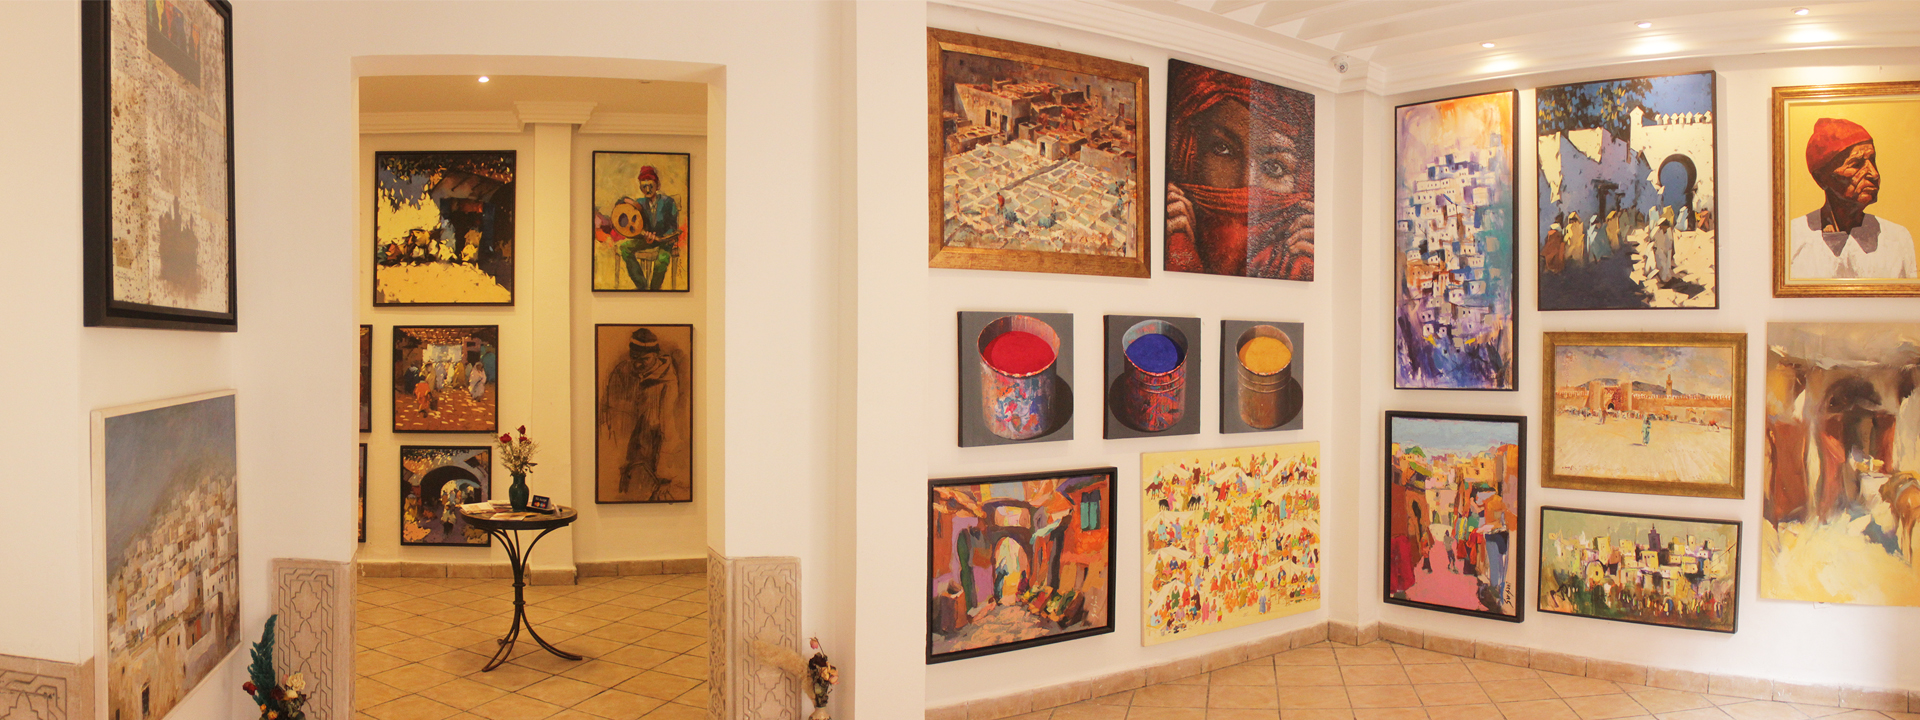 The Qoubba Gallery of Arts | Contemporary art in Morocco